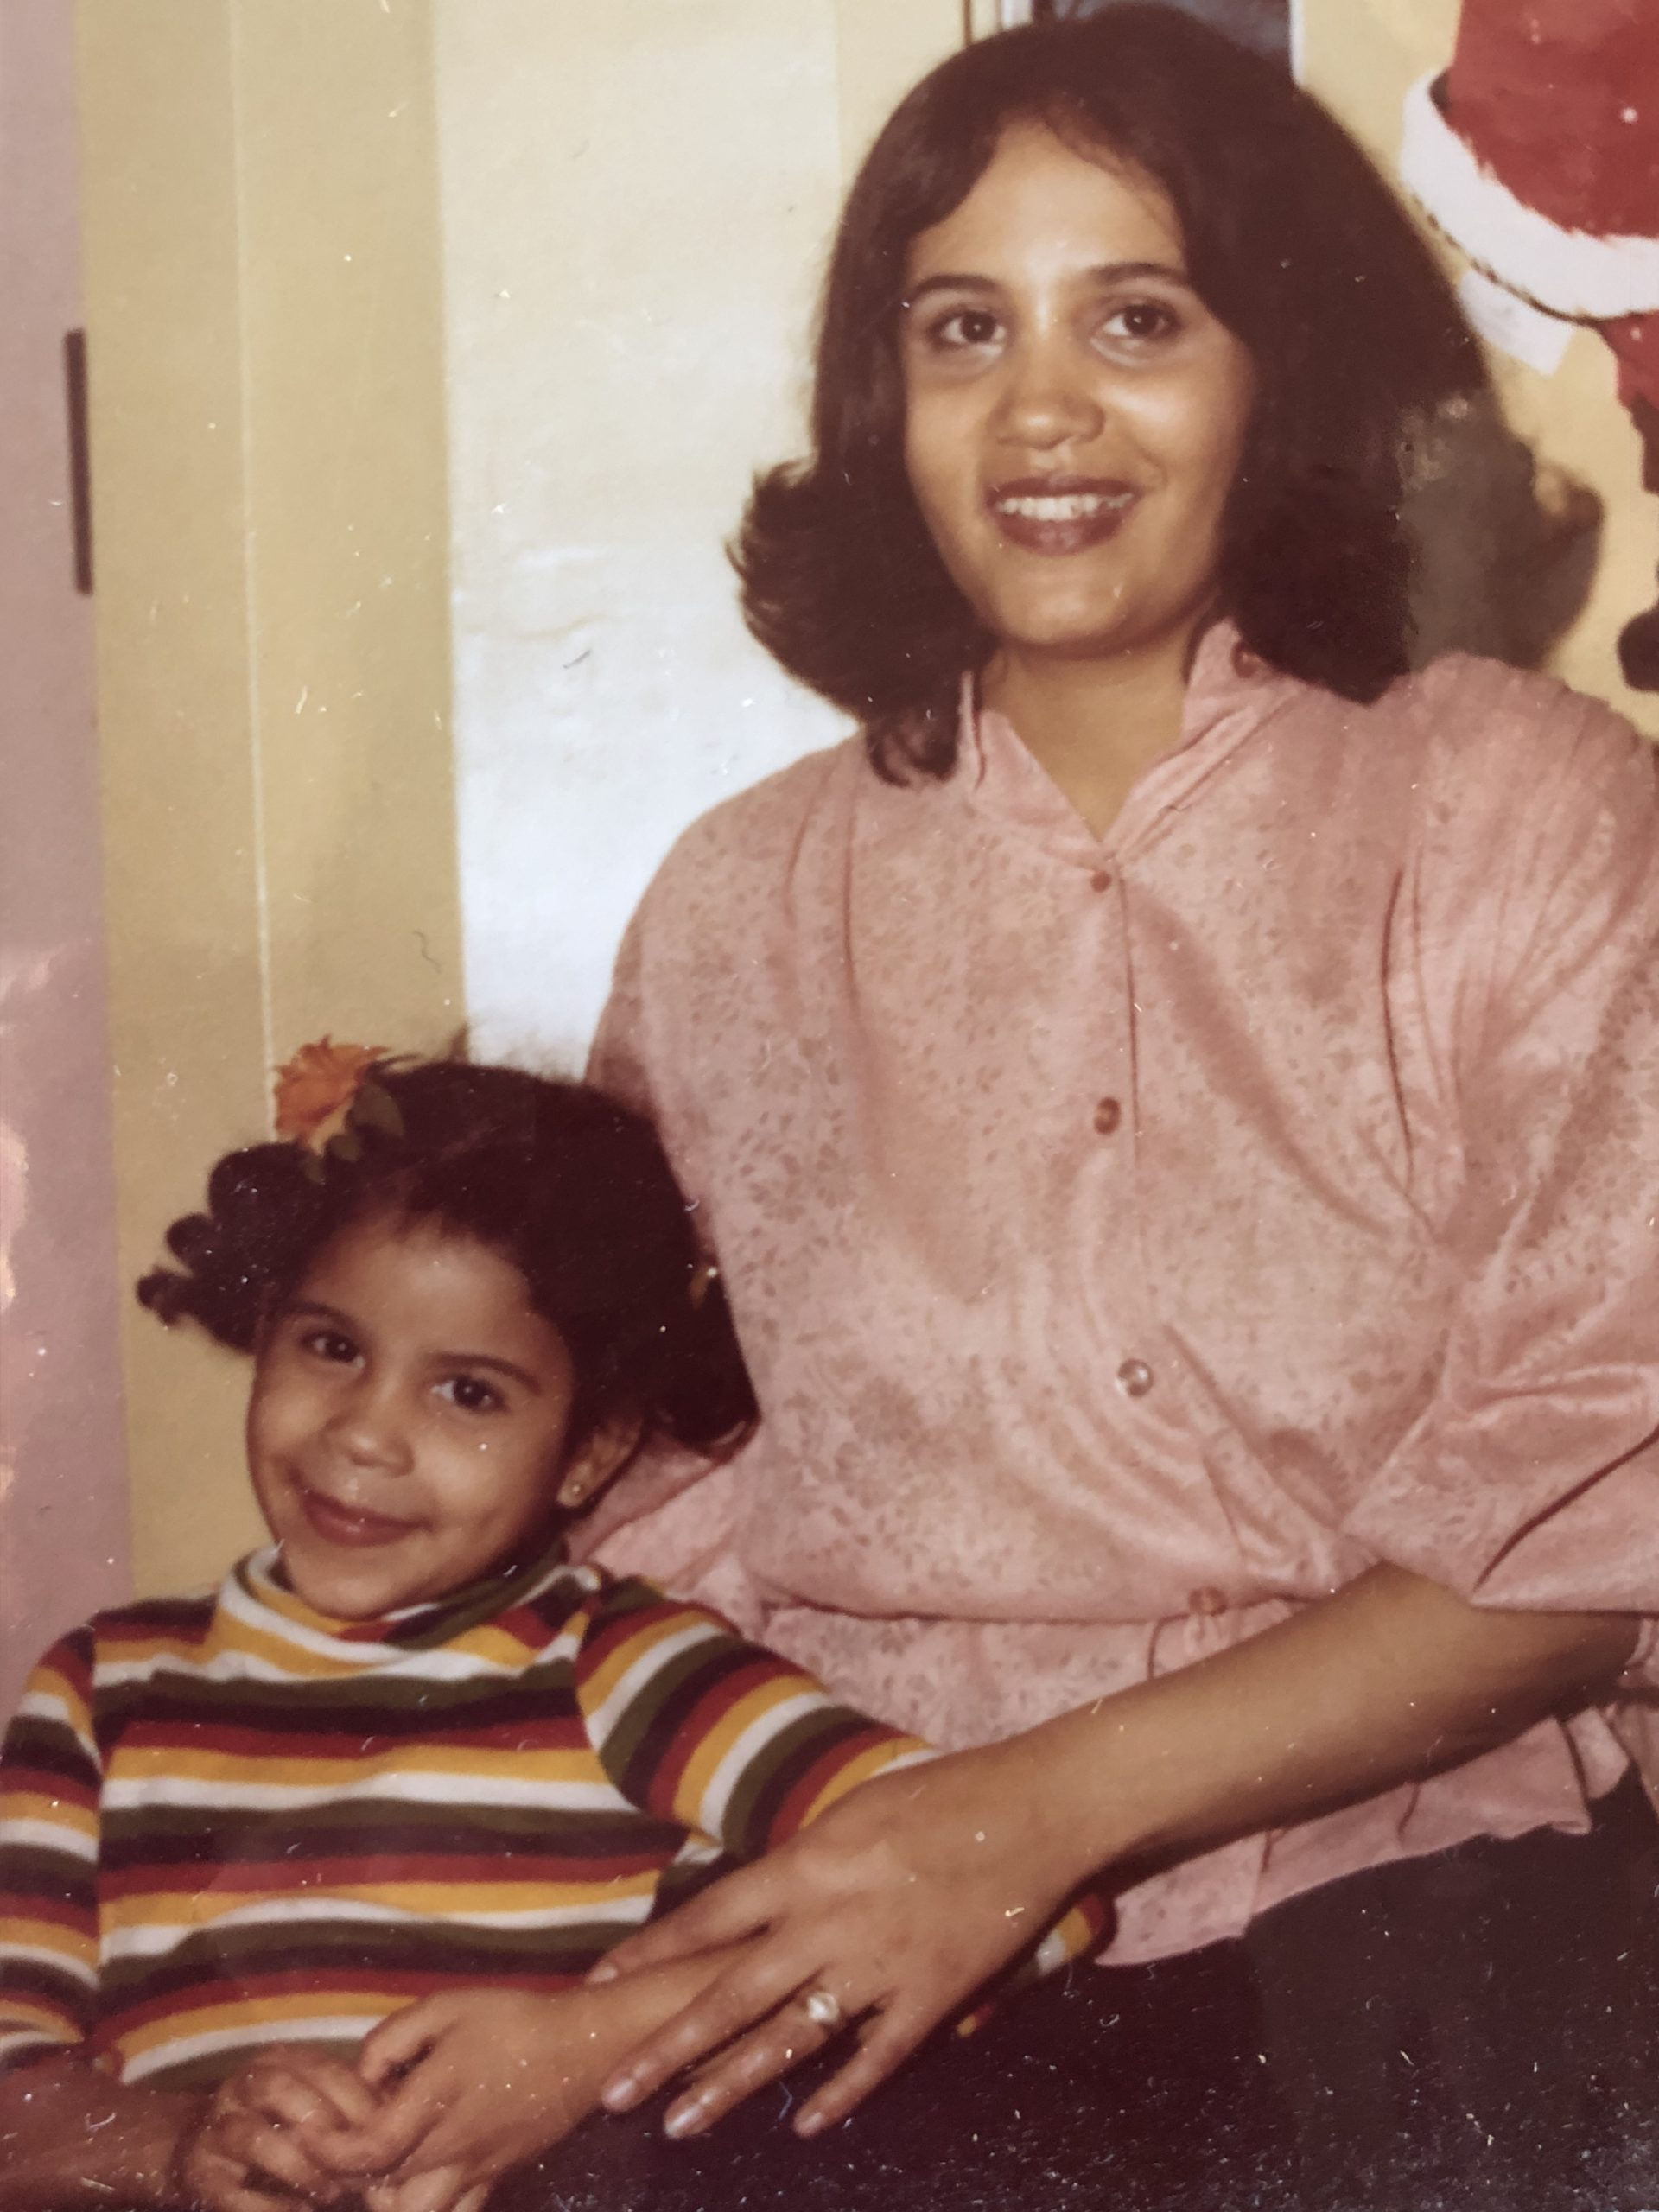 Joann Quiñones and her mother. (Contributed)